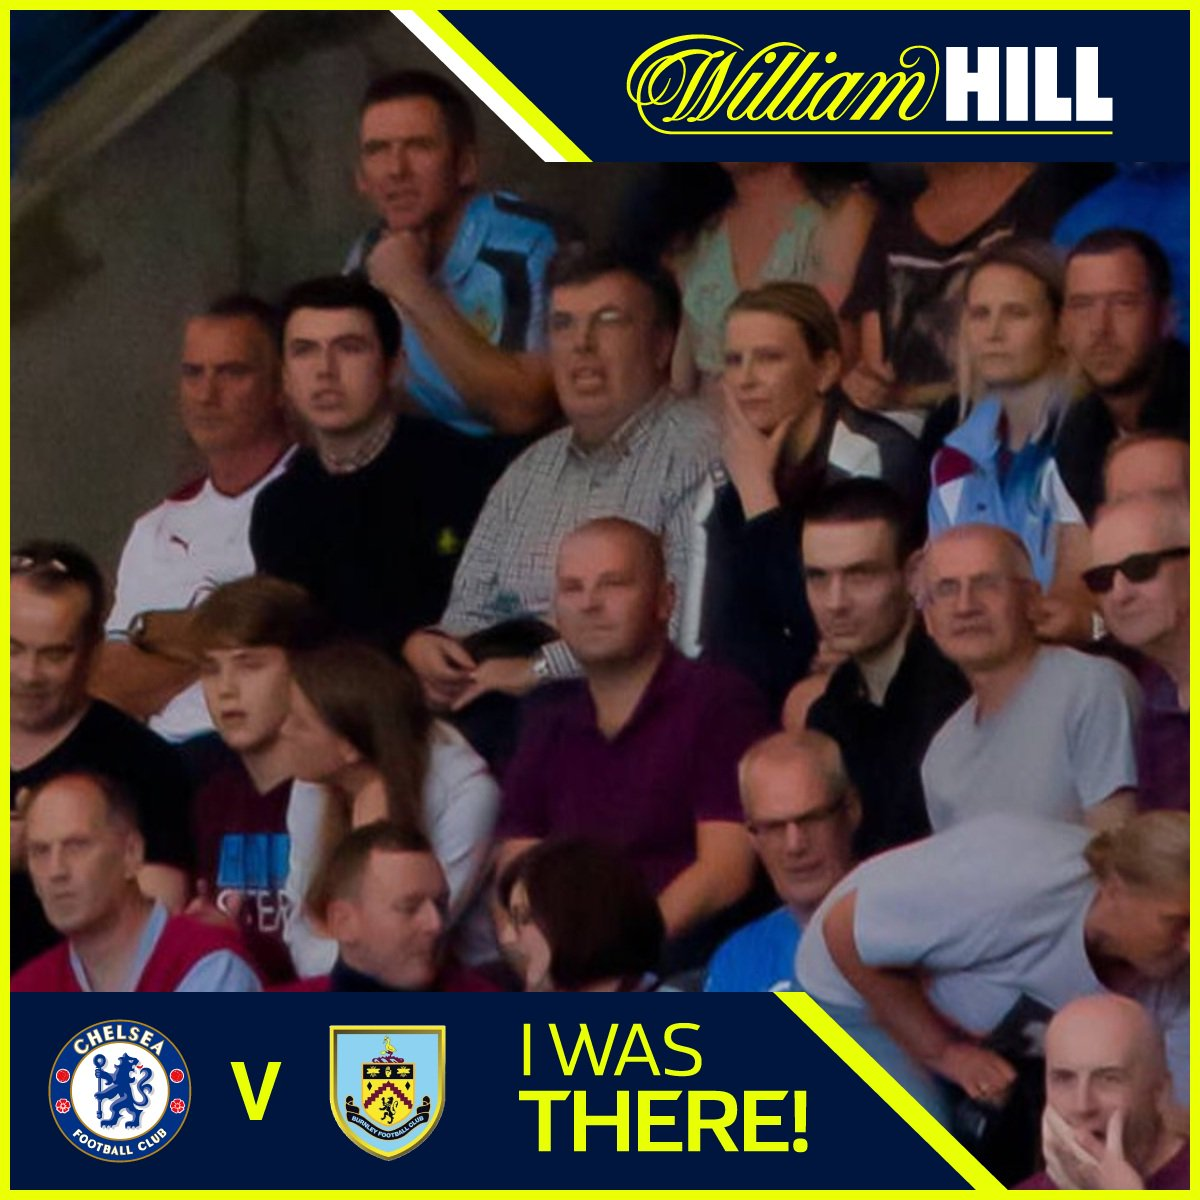 I was there! Check @WilliamHill FanPic  @ChelseaFC v Burnley #CHEBUR  http:// wh.cm/chelseafanpic  &nbsp;  <br>http://pic.twitter.com/iIV7lN3vzJ